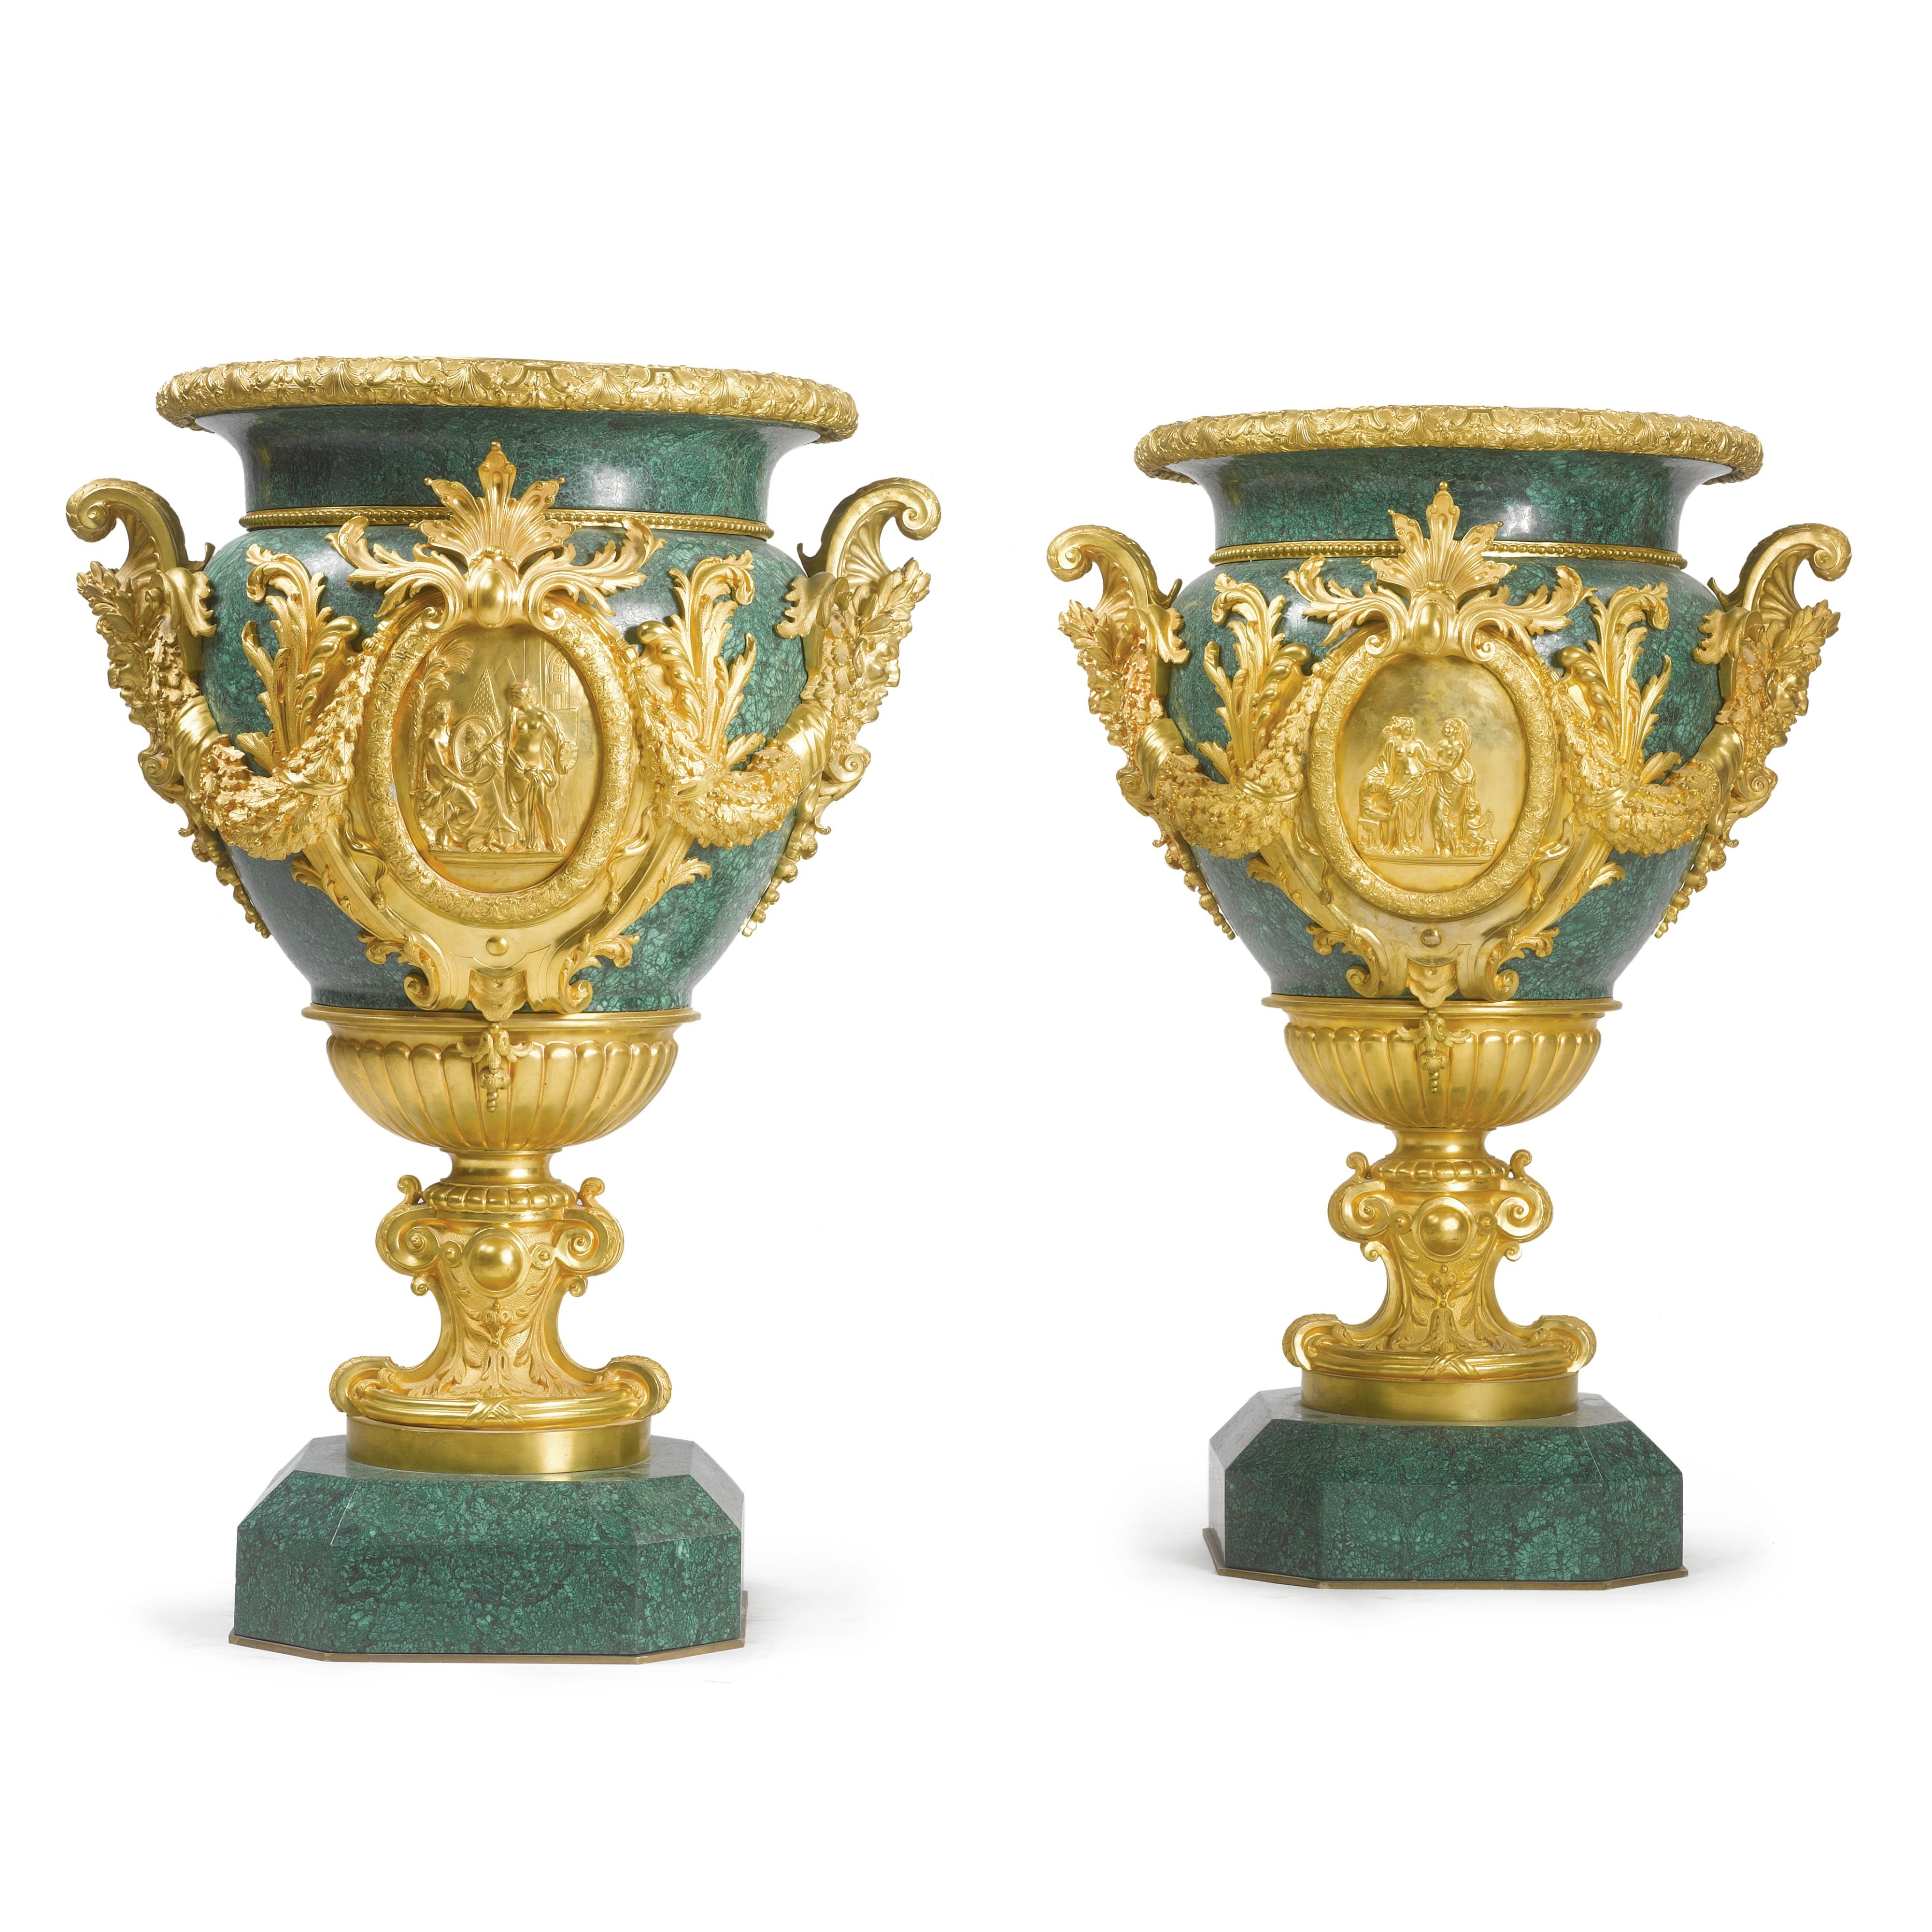 Large Decorative Vases And Urns Extraordinary A Very Large Pair Of Neoclassical Style Gilt Bronze And Malachite Design Inspiration